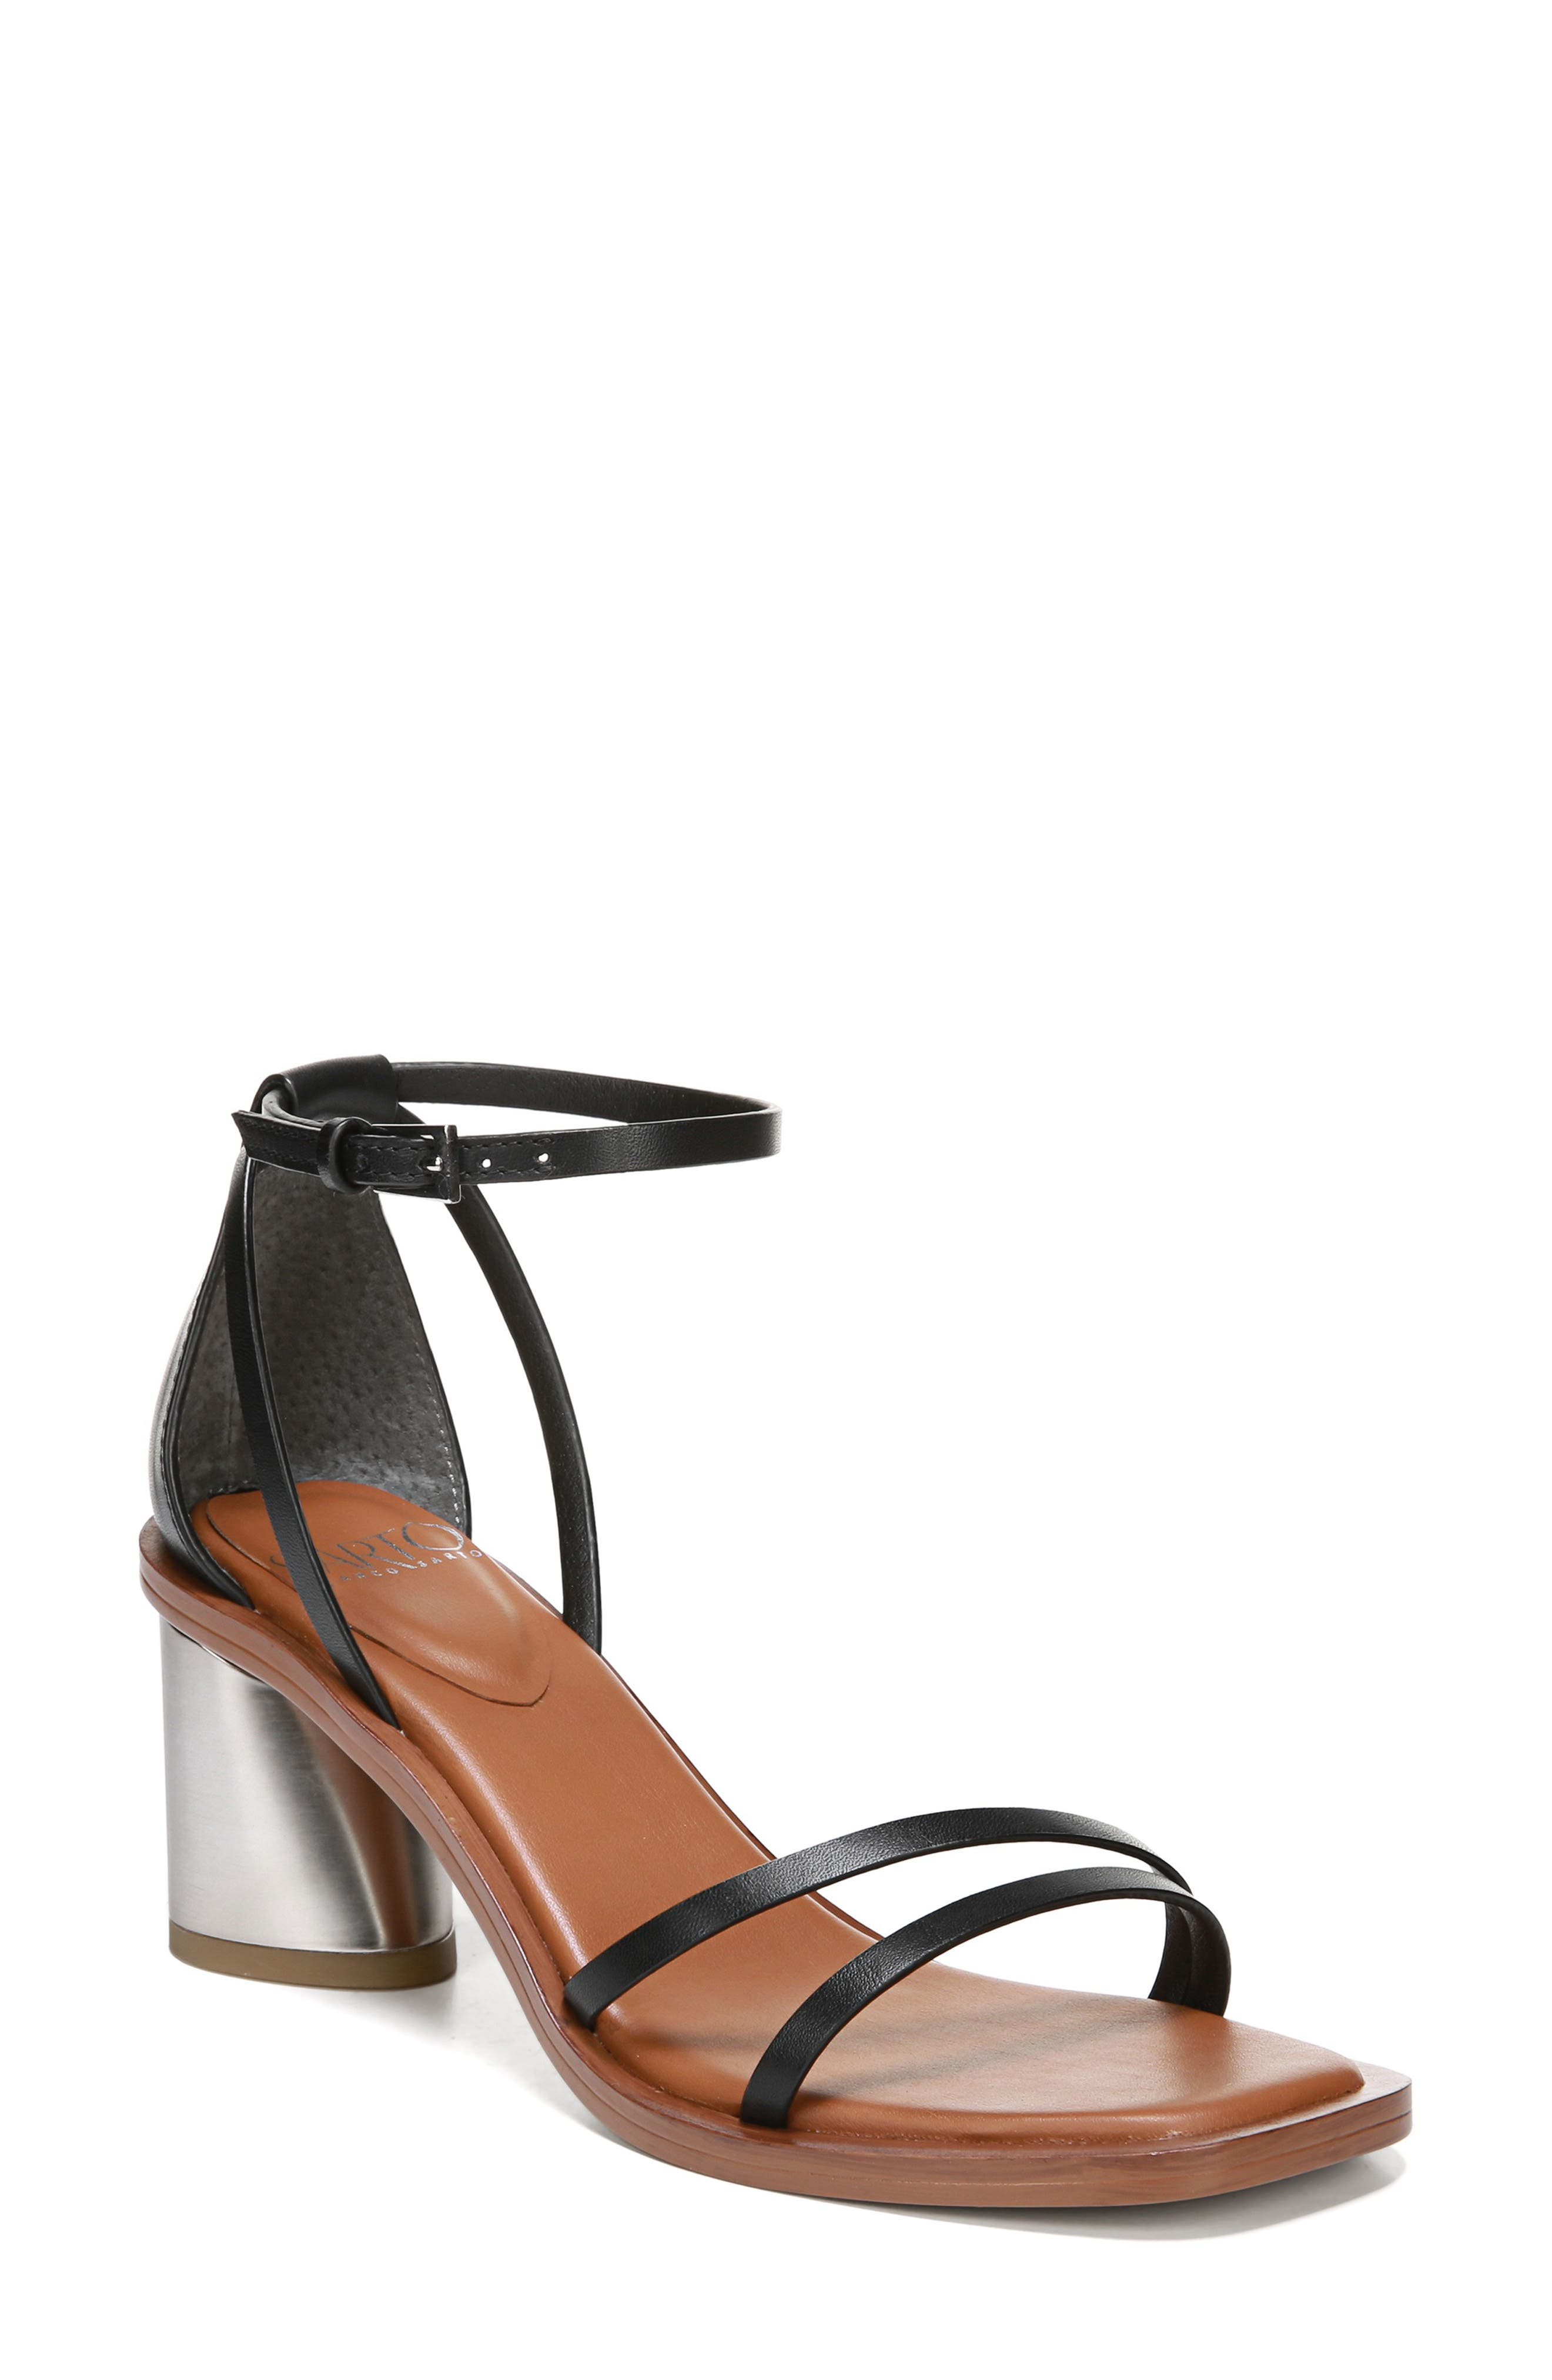 8c3b8d0a19d Sarto By Franco Sarto A-Ronelle Ankle Strap Sandal